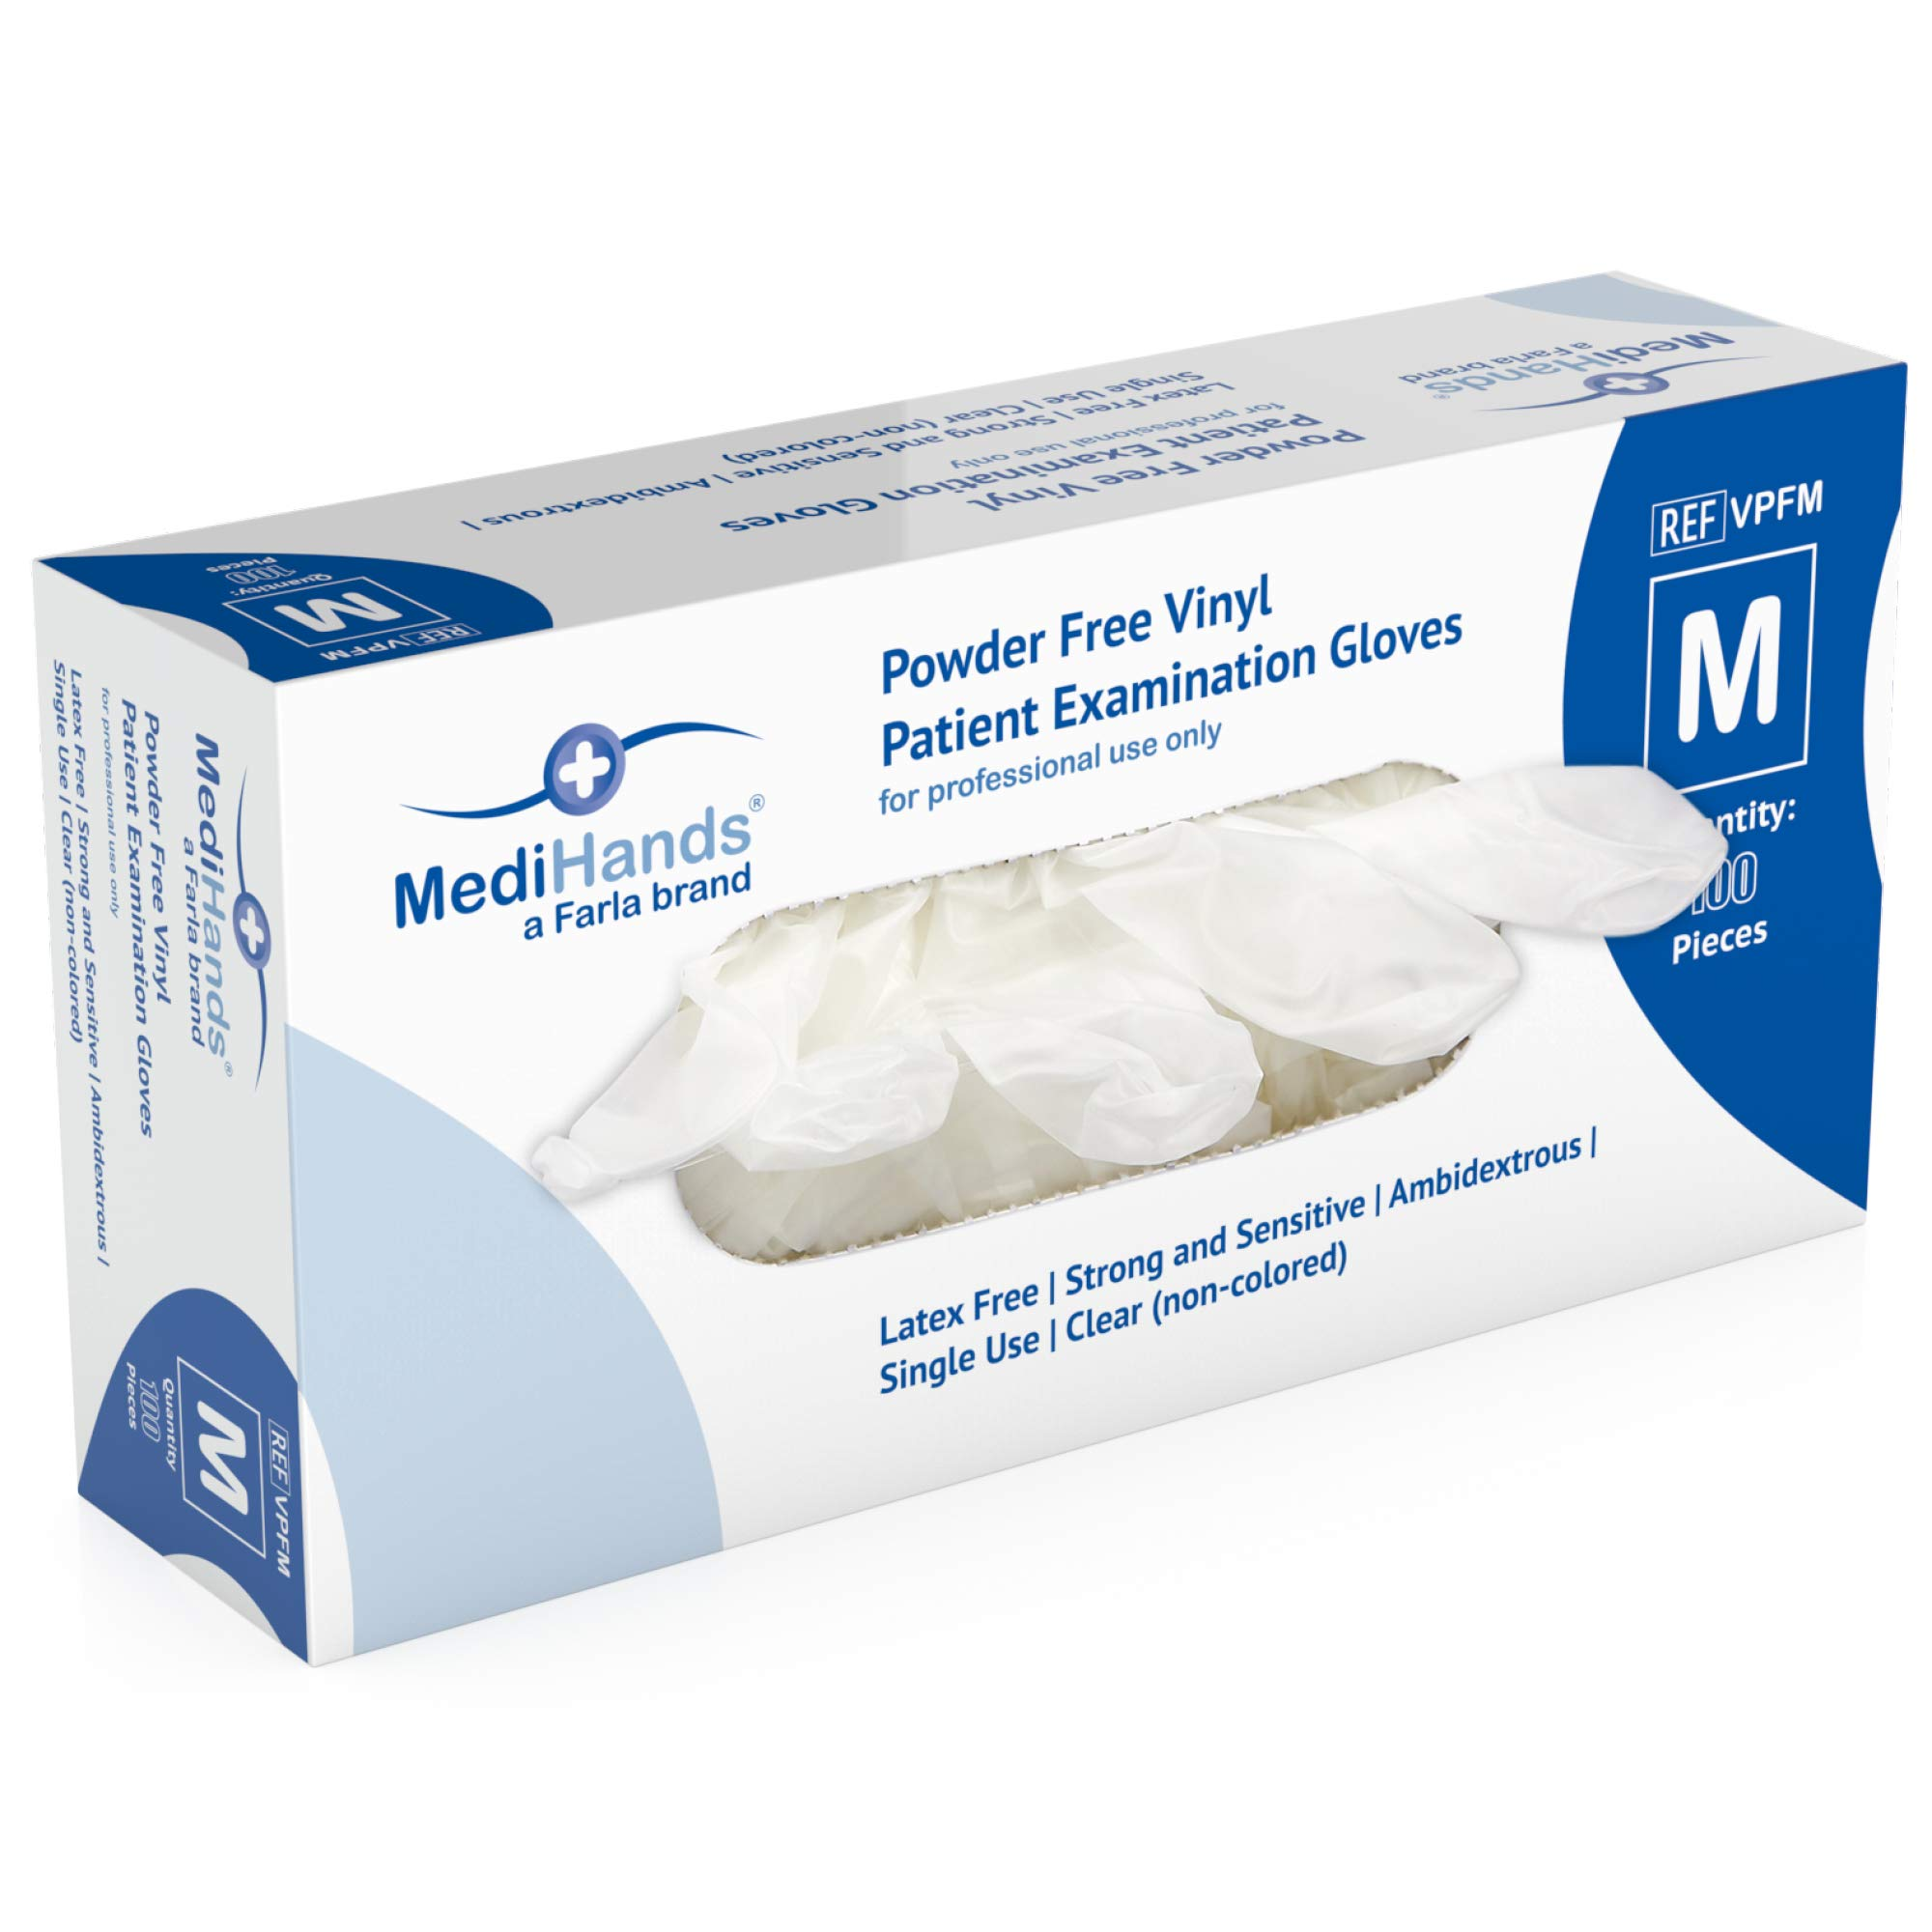 Heavy Duty Disposable Vinyl Gloves, 100 Count, Medium - Powder Free, Ambidextrous, Super Comfortable, Extra Strong, Durable and Stretchy, Medical, Food and Multi Use - By MediHands by MediHands